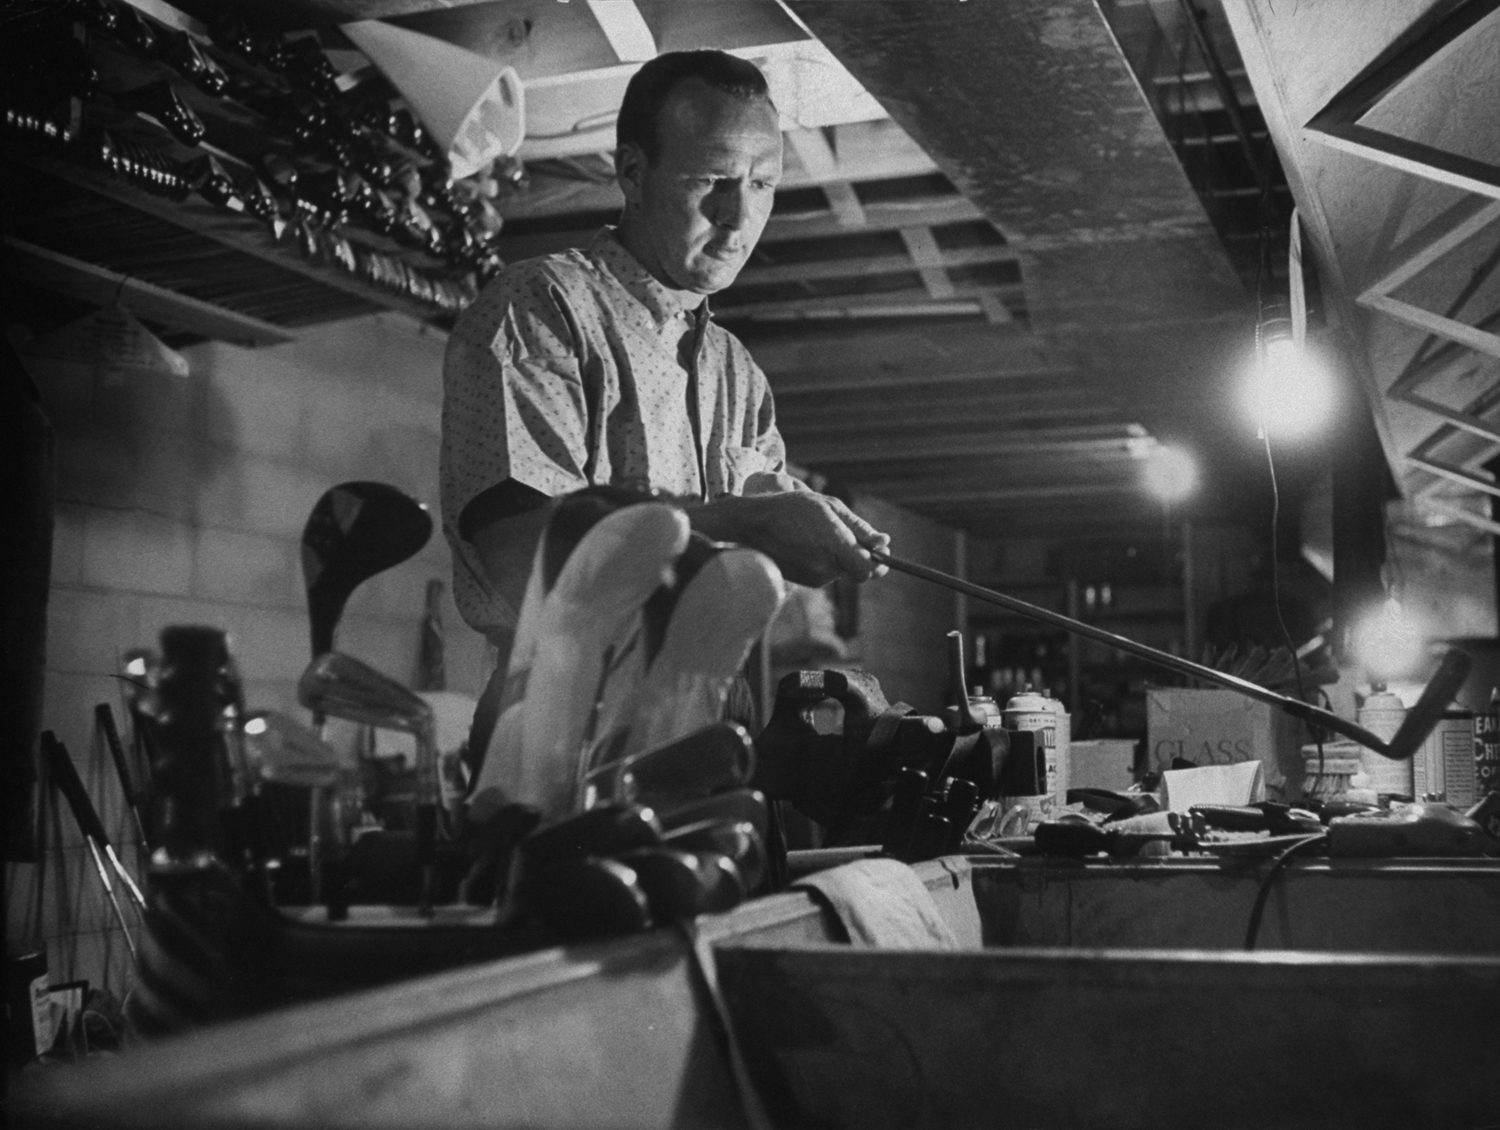 <b>Caption from LIFE.</b> In home workshop Palmer grinds, inspects, repairs tools of his trade. Palmer's search for perfection keeps him tinkering with equipment.